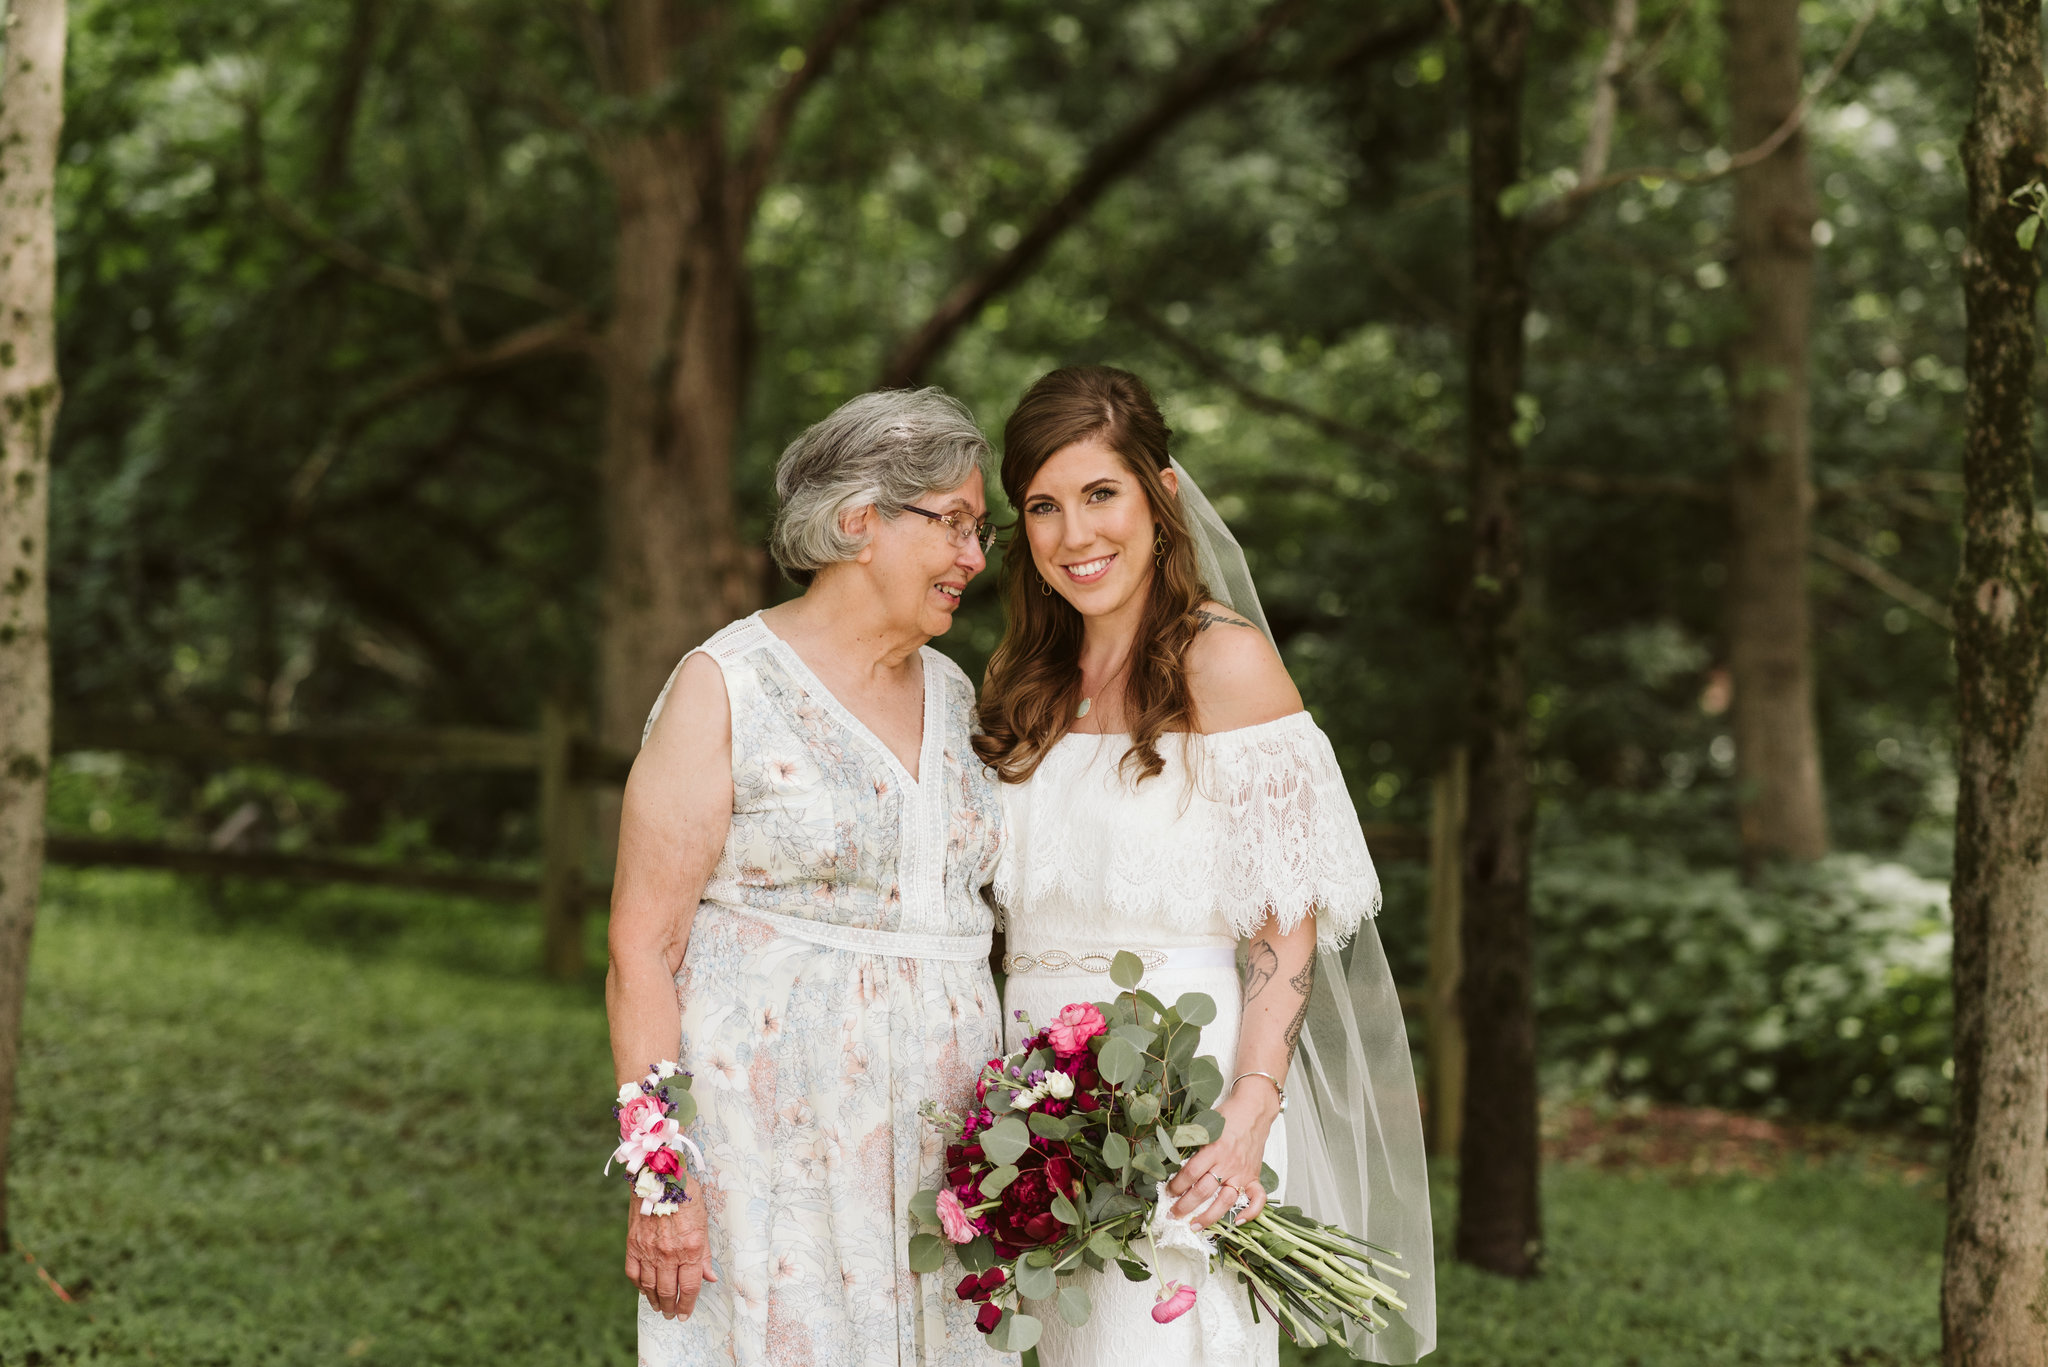 Annapolis, Quaker Wedding, Maryland Wedding Photographer, Intimate, Small Wedding, Vintage, DIY, Bride with Mother of the Bride, Portrait